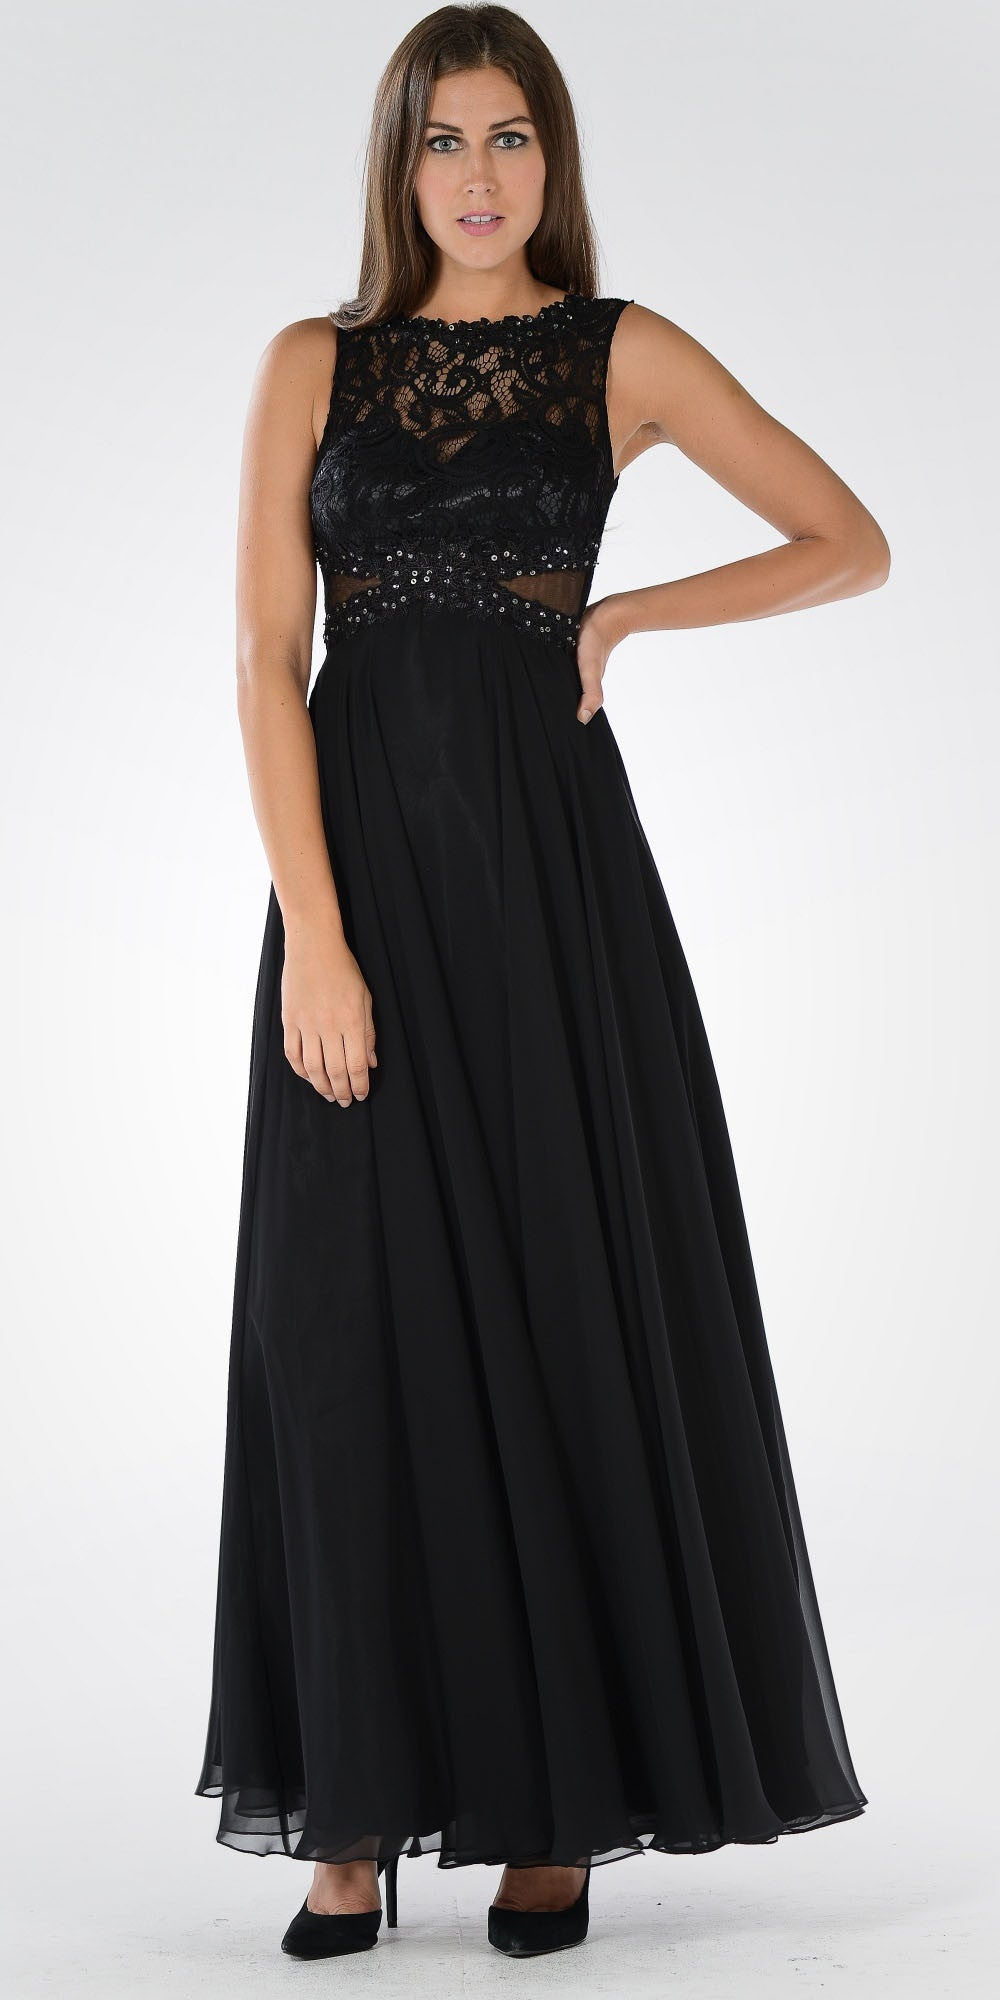 6bf9b8396b00 Lace Bodice Sleeveless A-Line Formal Dress Black Long Mesh Side Cut ...